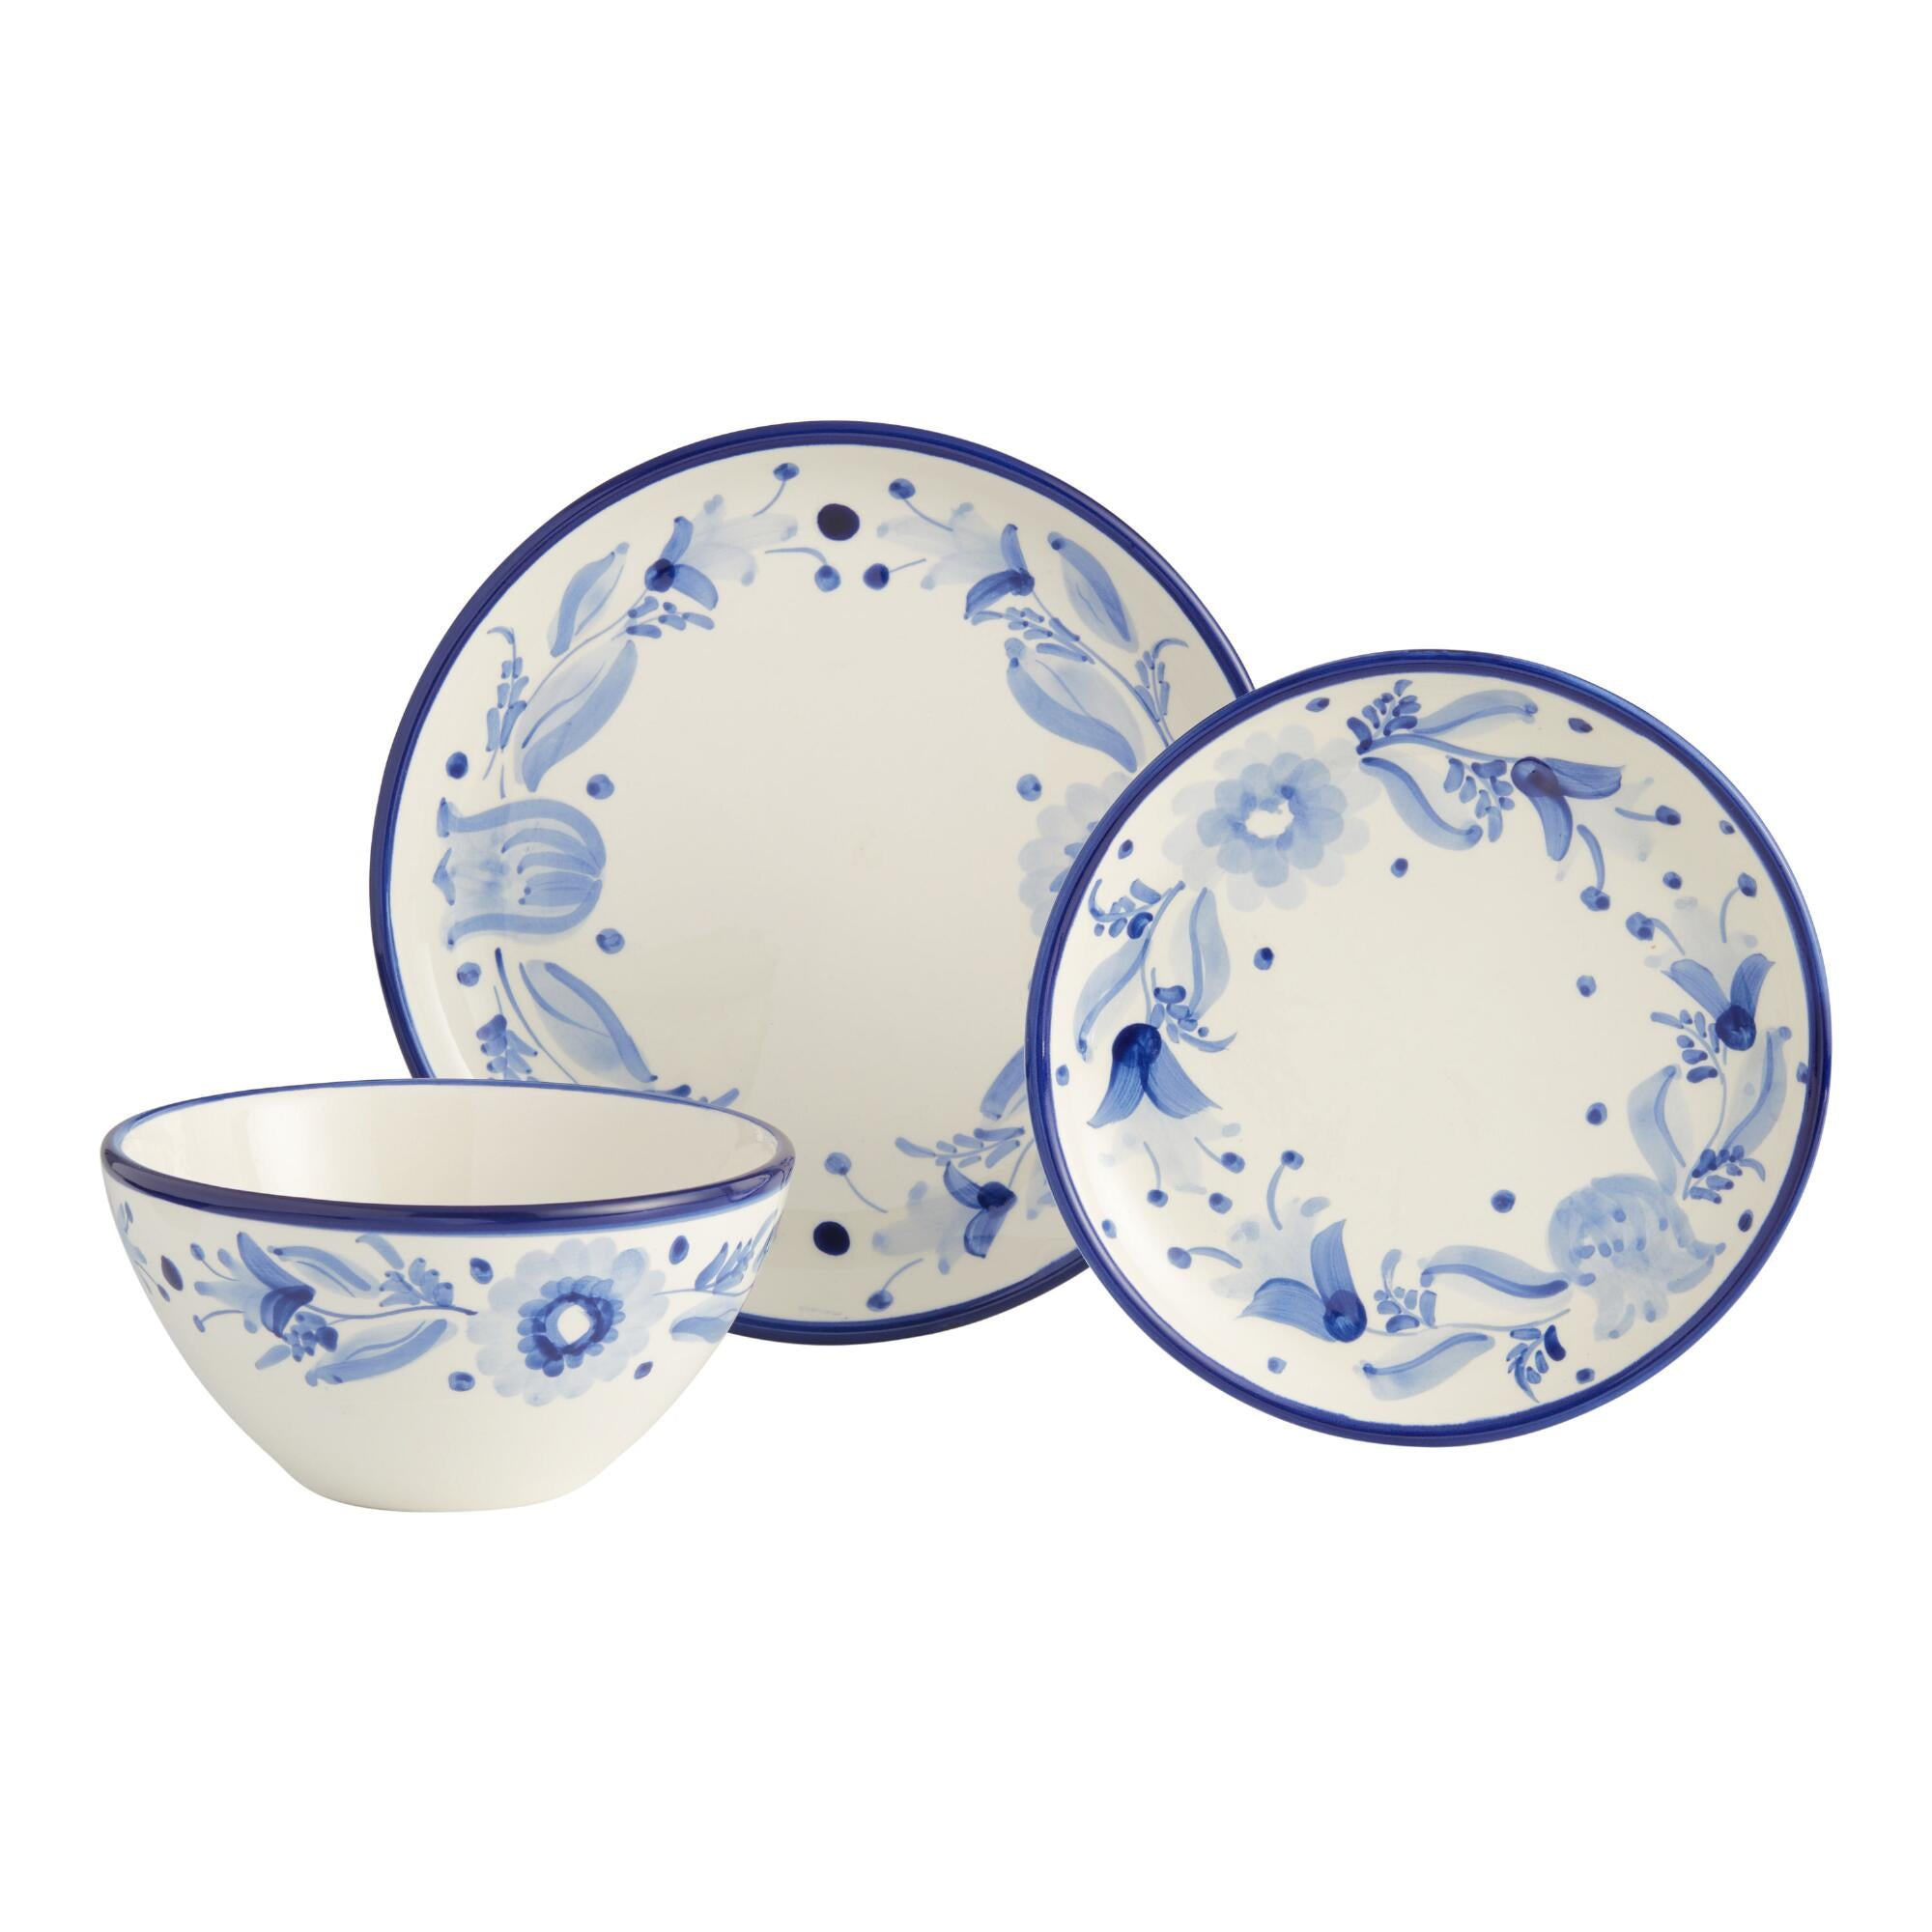 Blue and White Flor Azul Dinnerware Collection by World Market